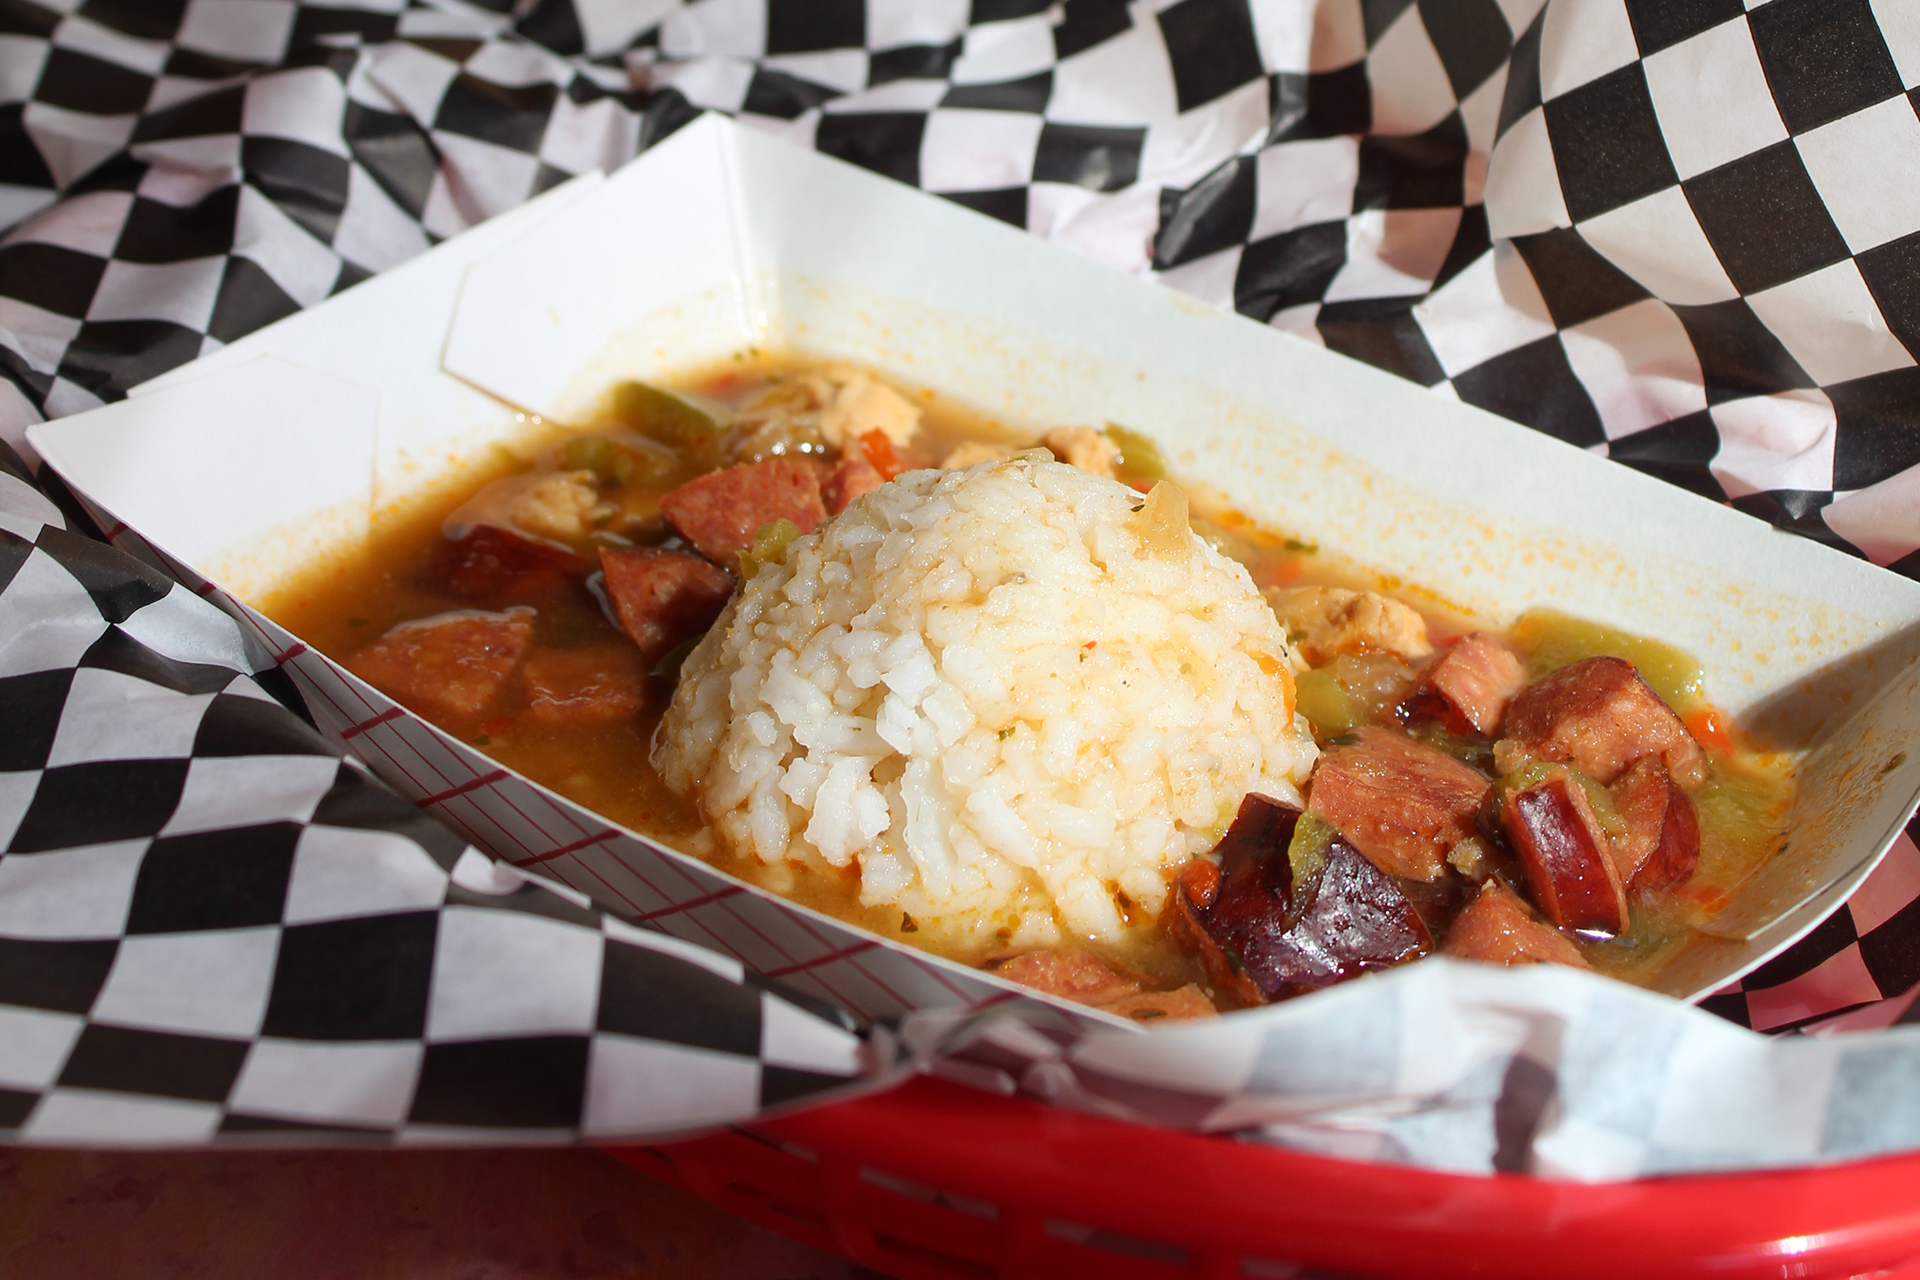 kc daiquiri shop chicken gumbo